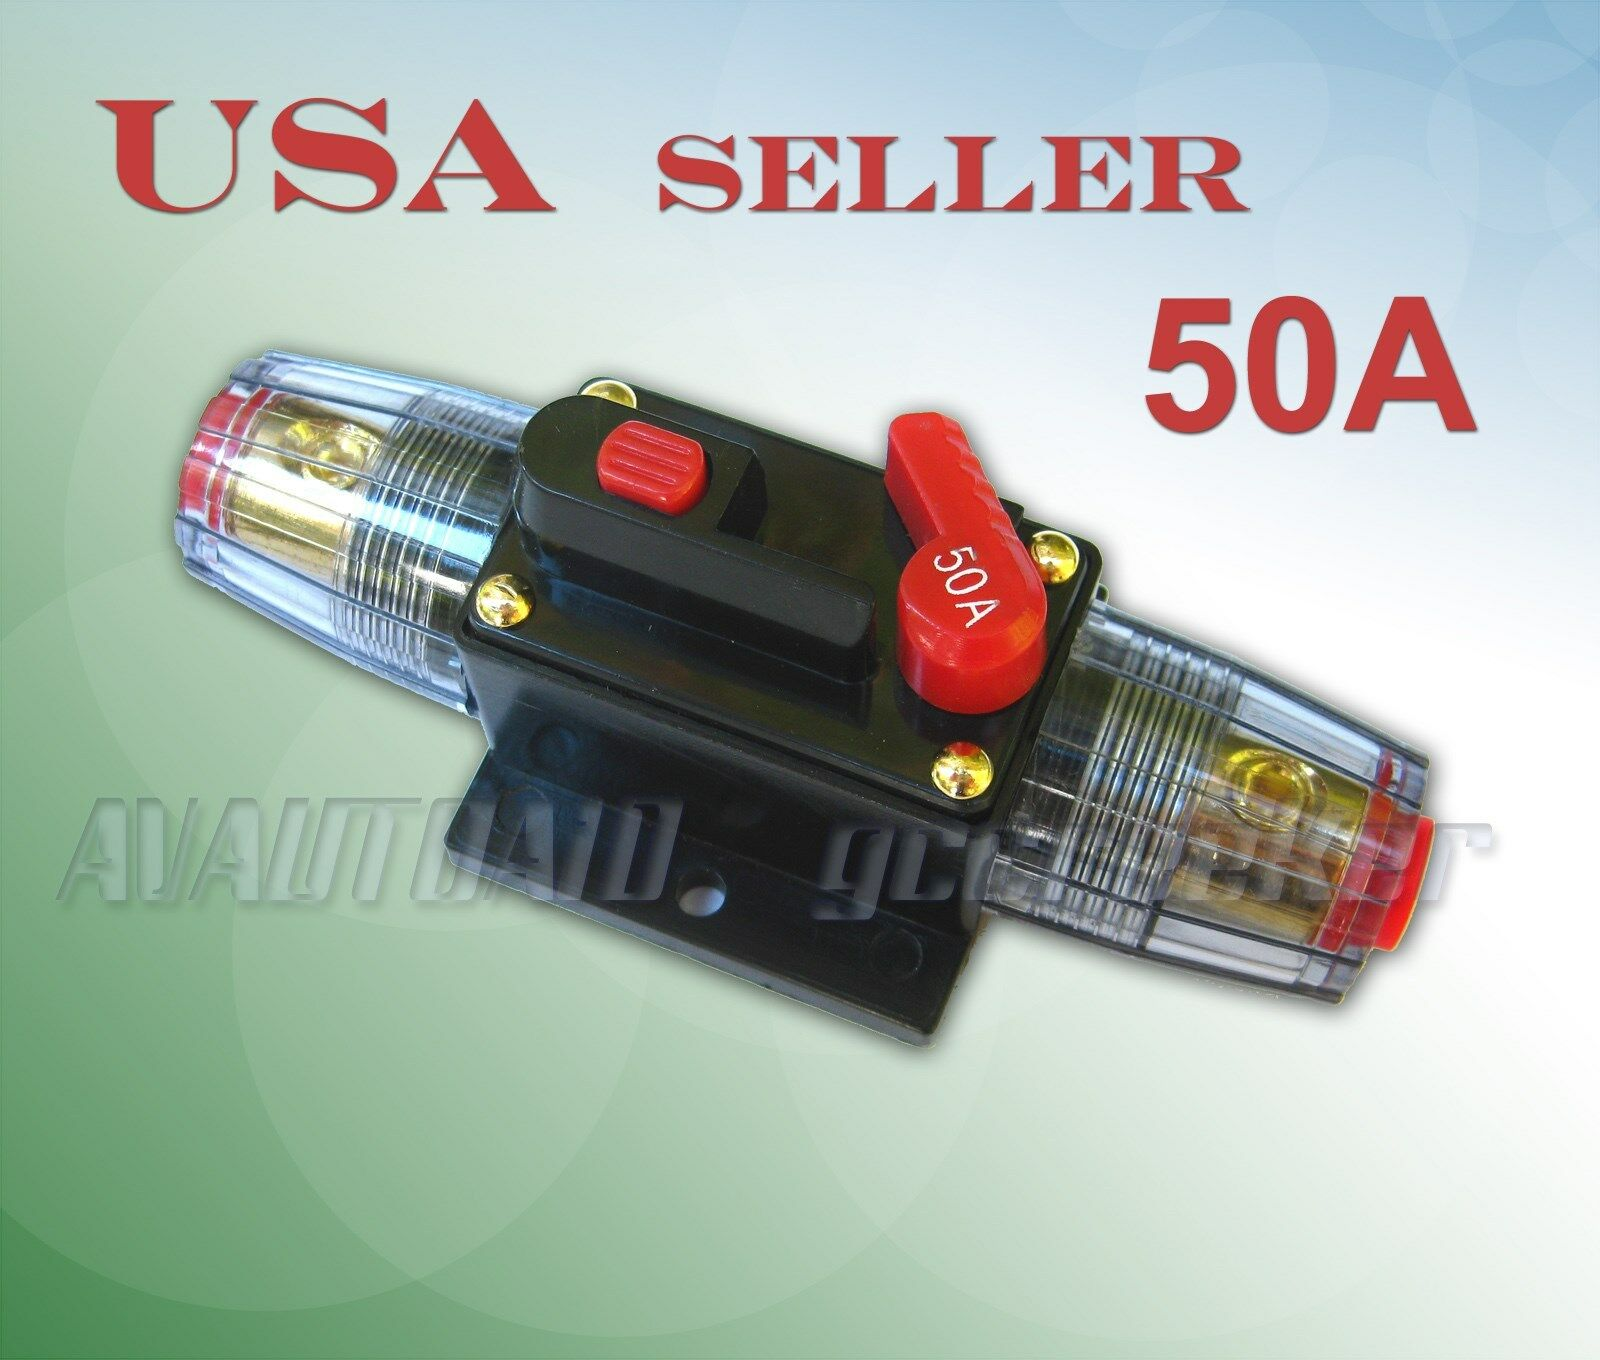 50a car audio inline circuit breaker fuse for 12v system protection rh picclick com